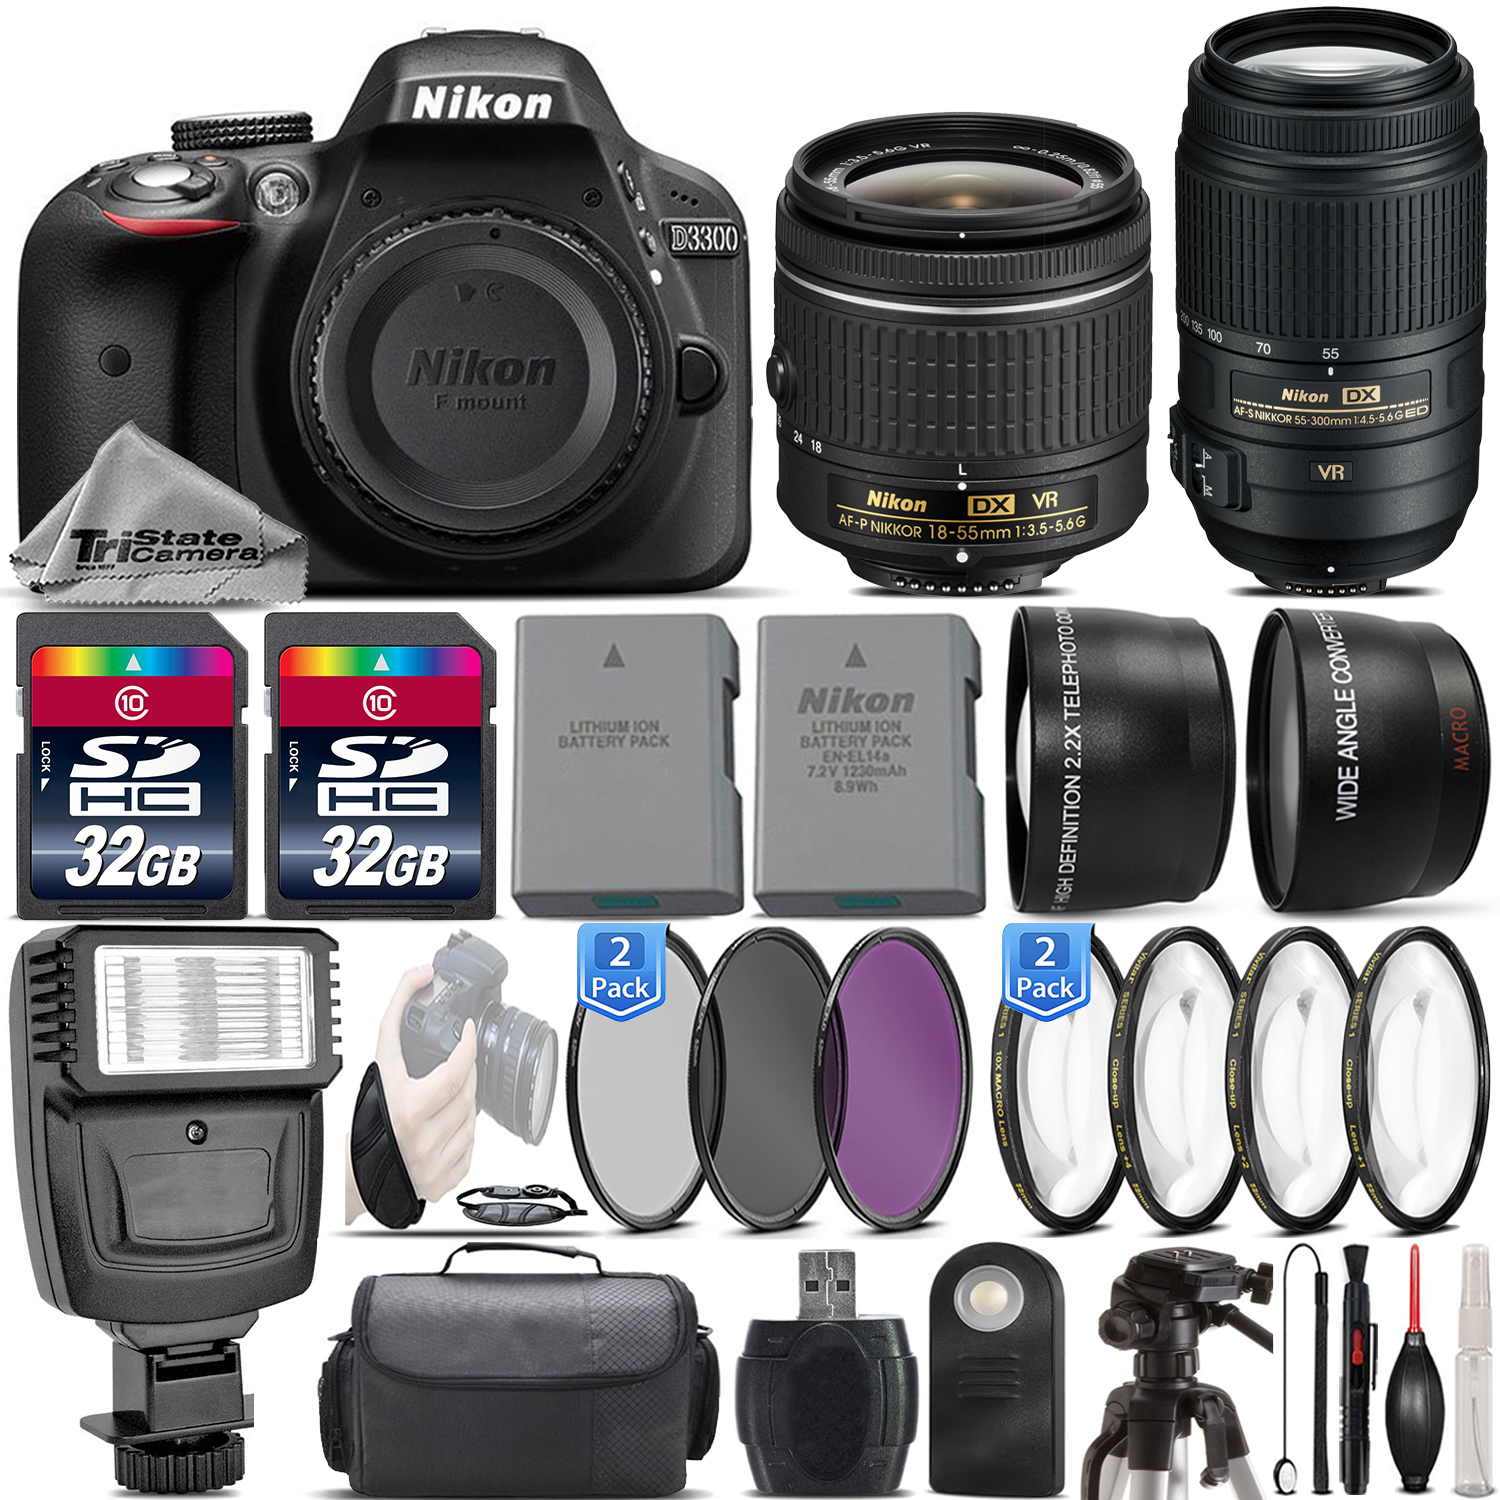 Nikon D3300 24.2MP DSLR Camera + 18-55mm VR Lens + 55-300mm VR - 64GB Kit Bundle